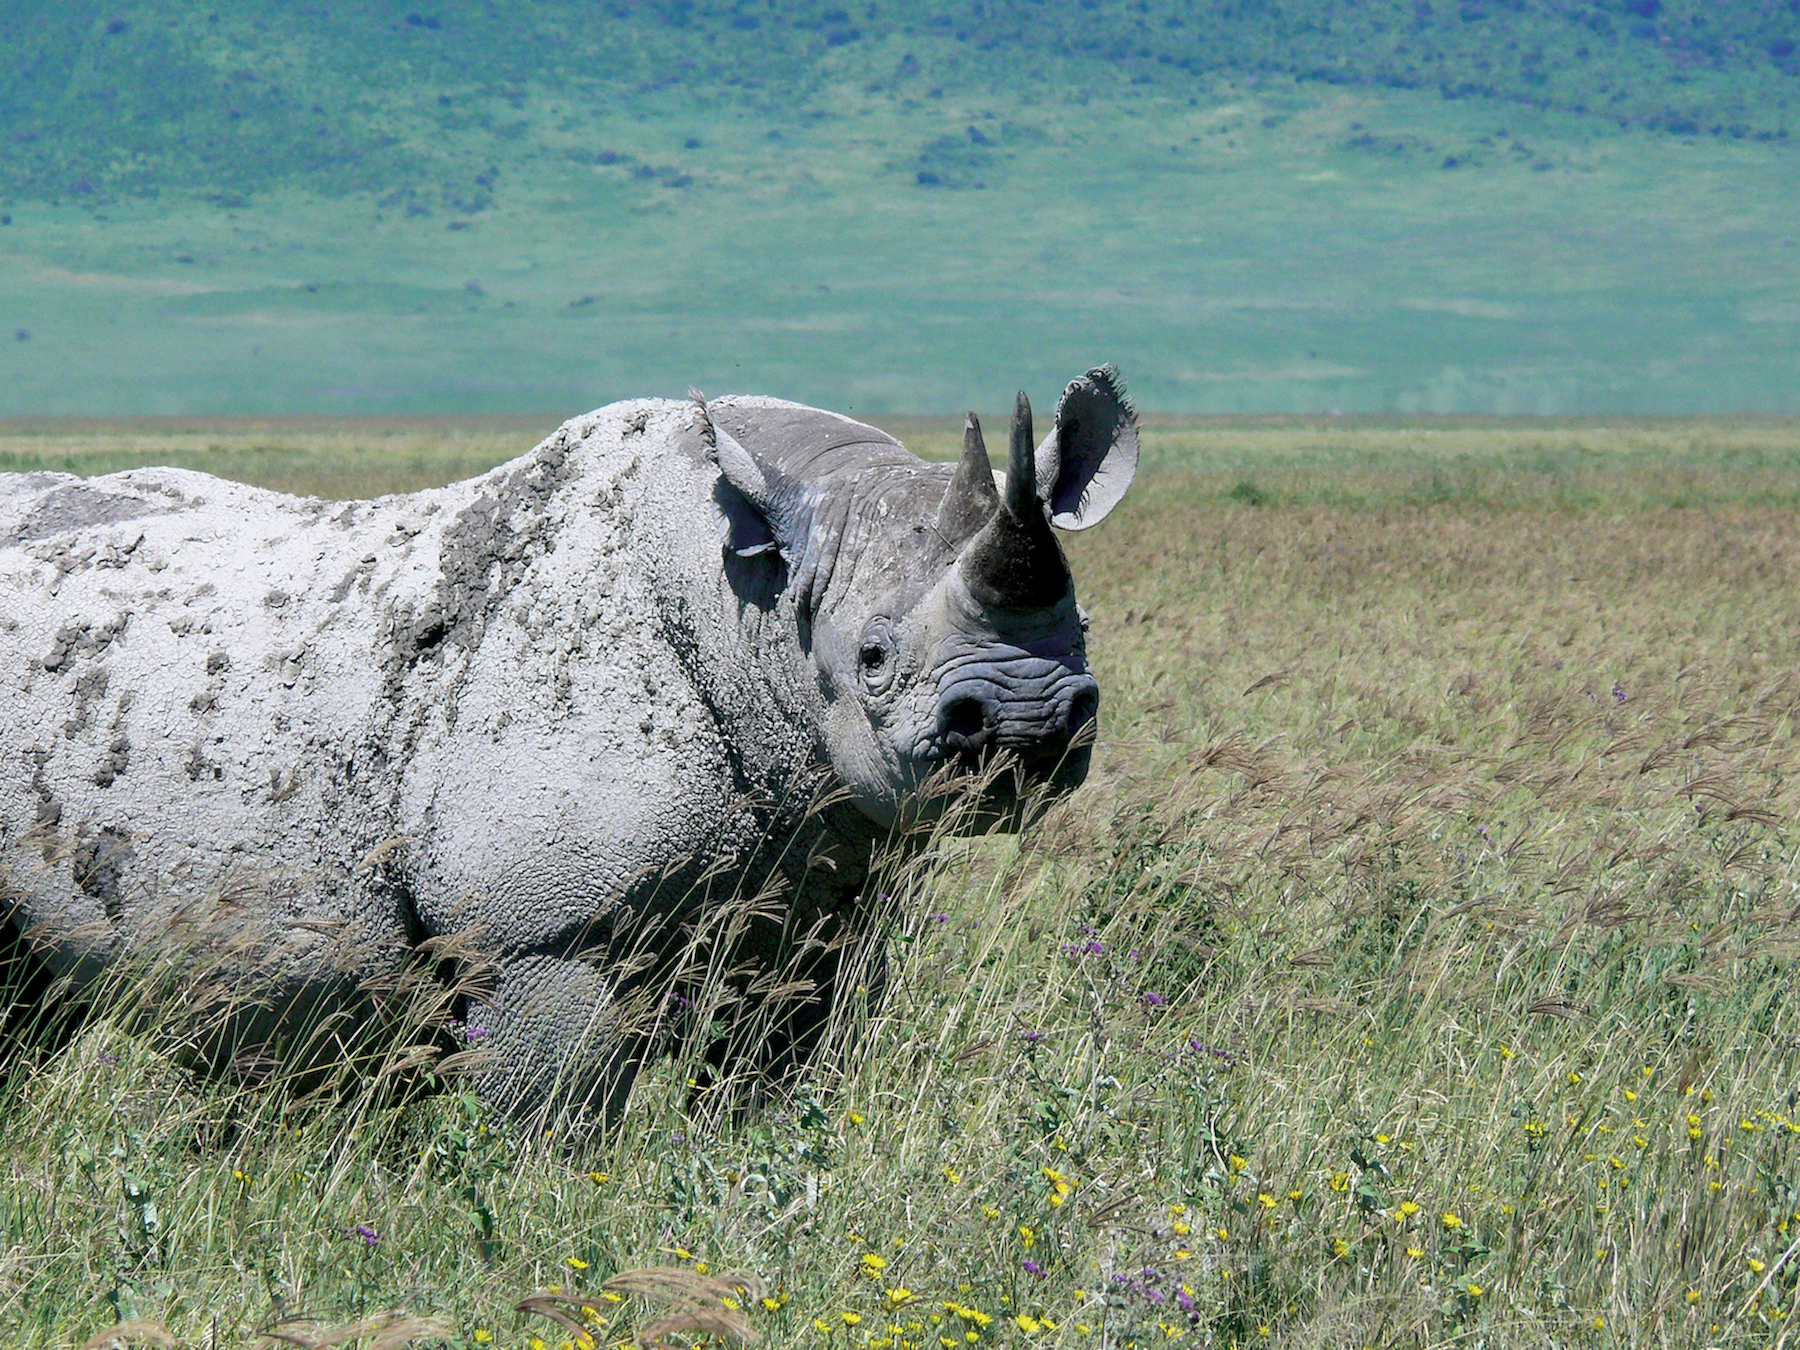 Rhino: one of the prized Big Five animals